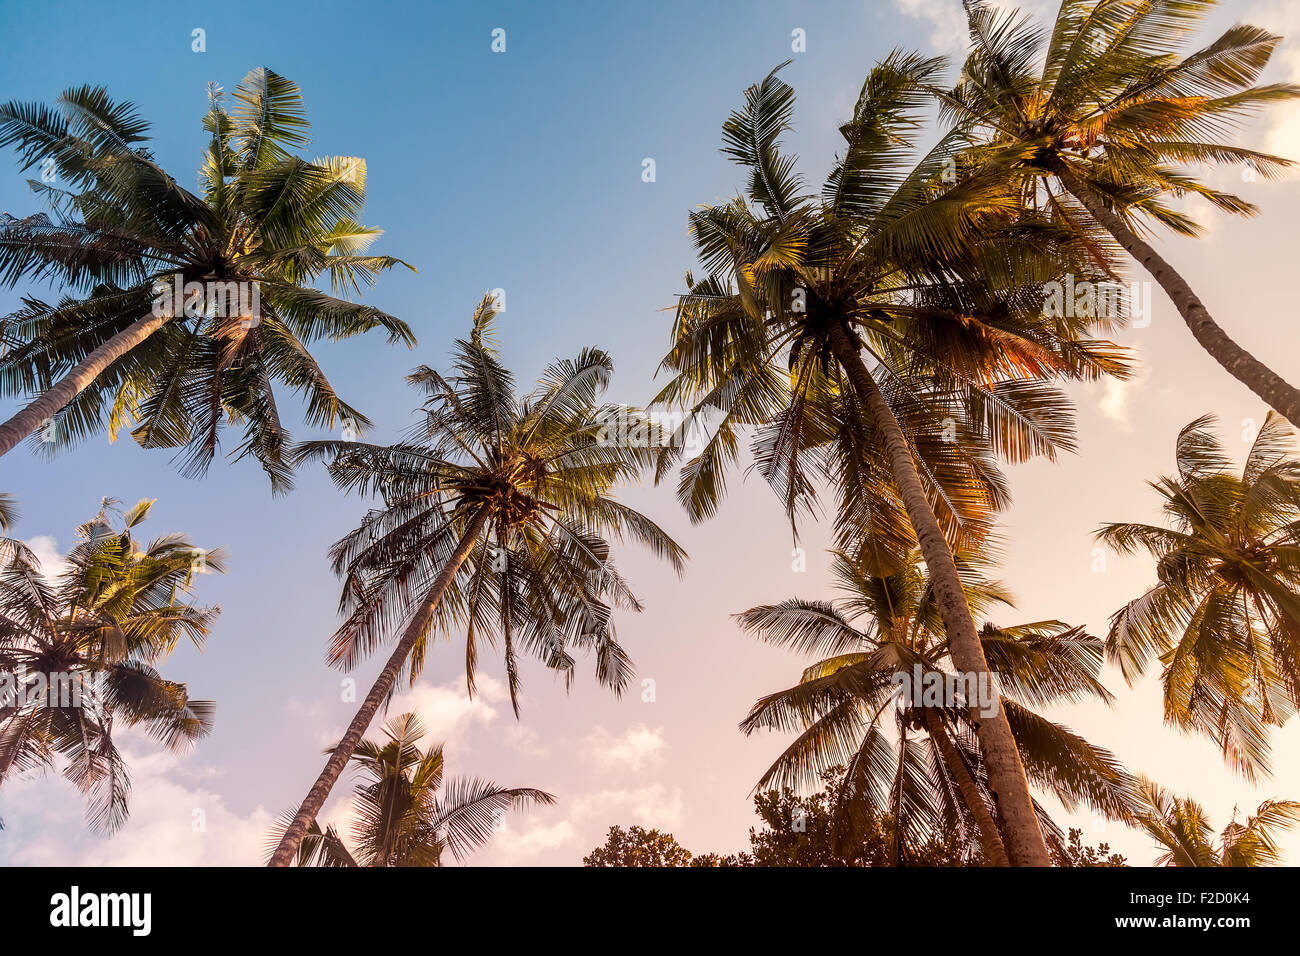 Palm trees on a warm sunny day at sunset, with warm toning - Stock Image